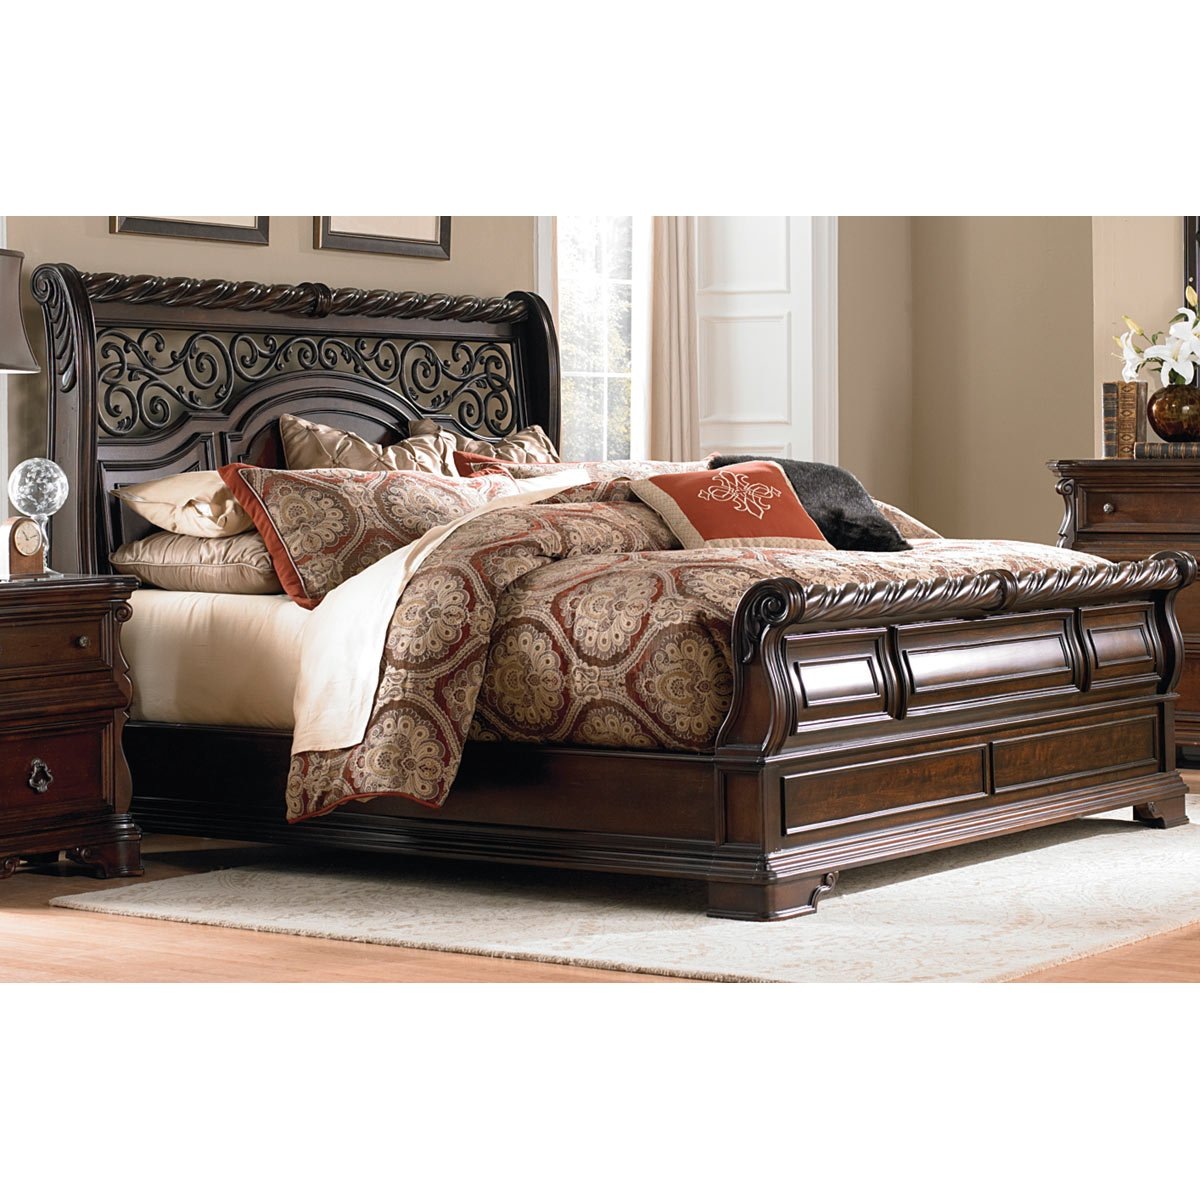 Traditional Brown King Size Sleigh Bed Arbor Place Liberty Furniture King Bedroom Sets Bedroom Sets